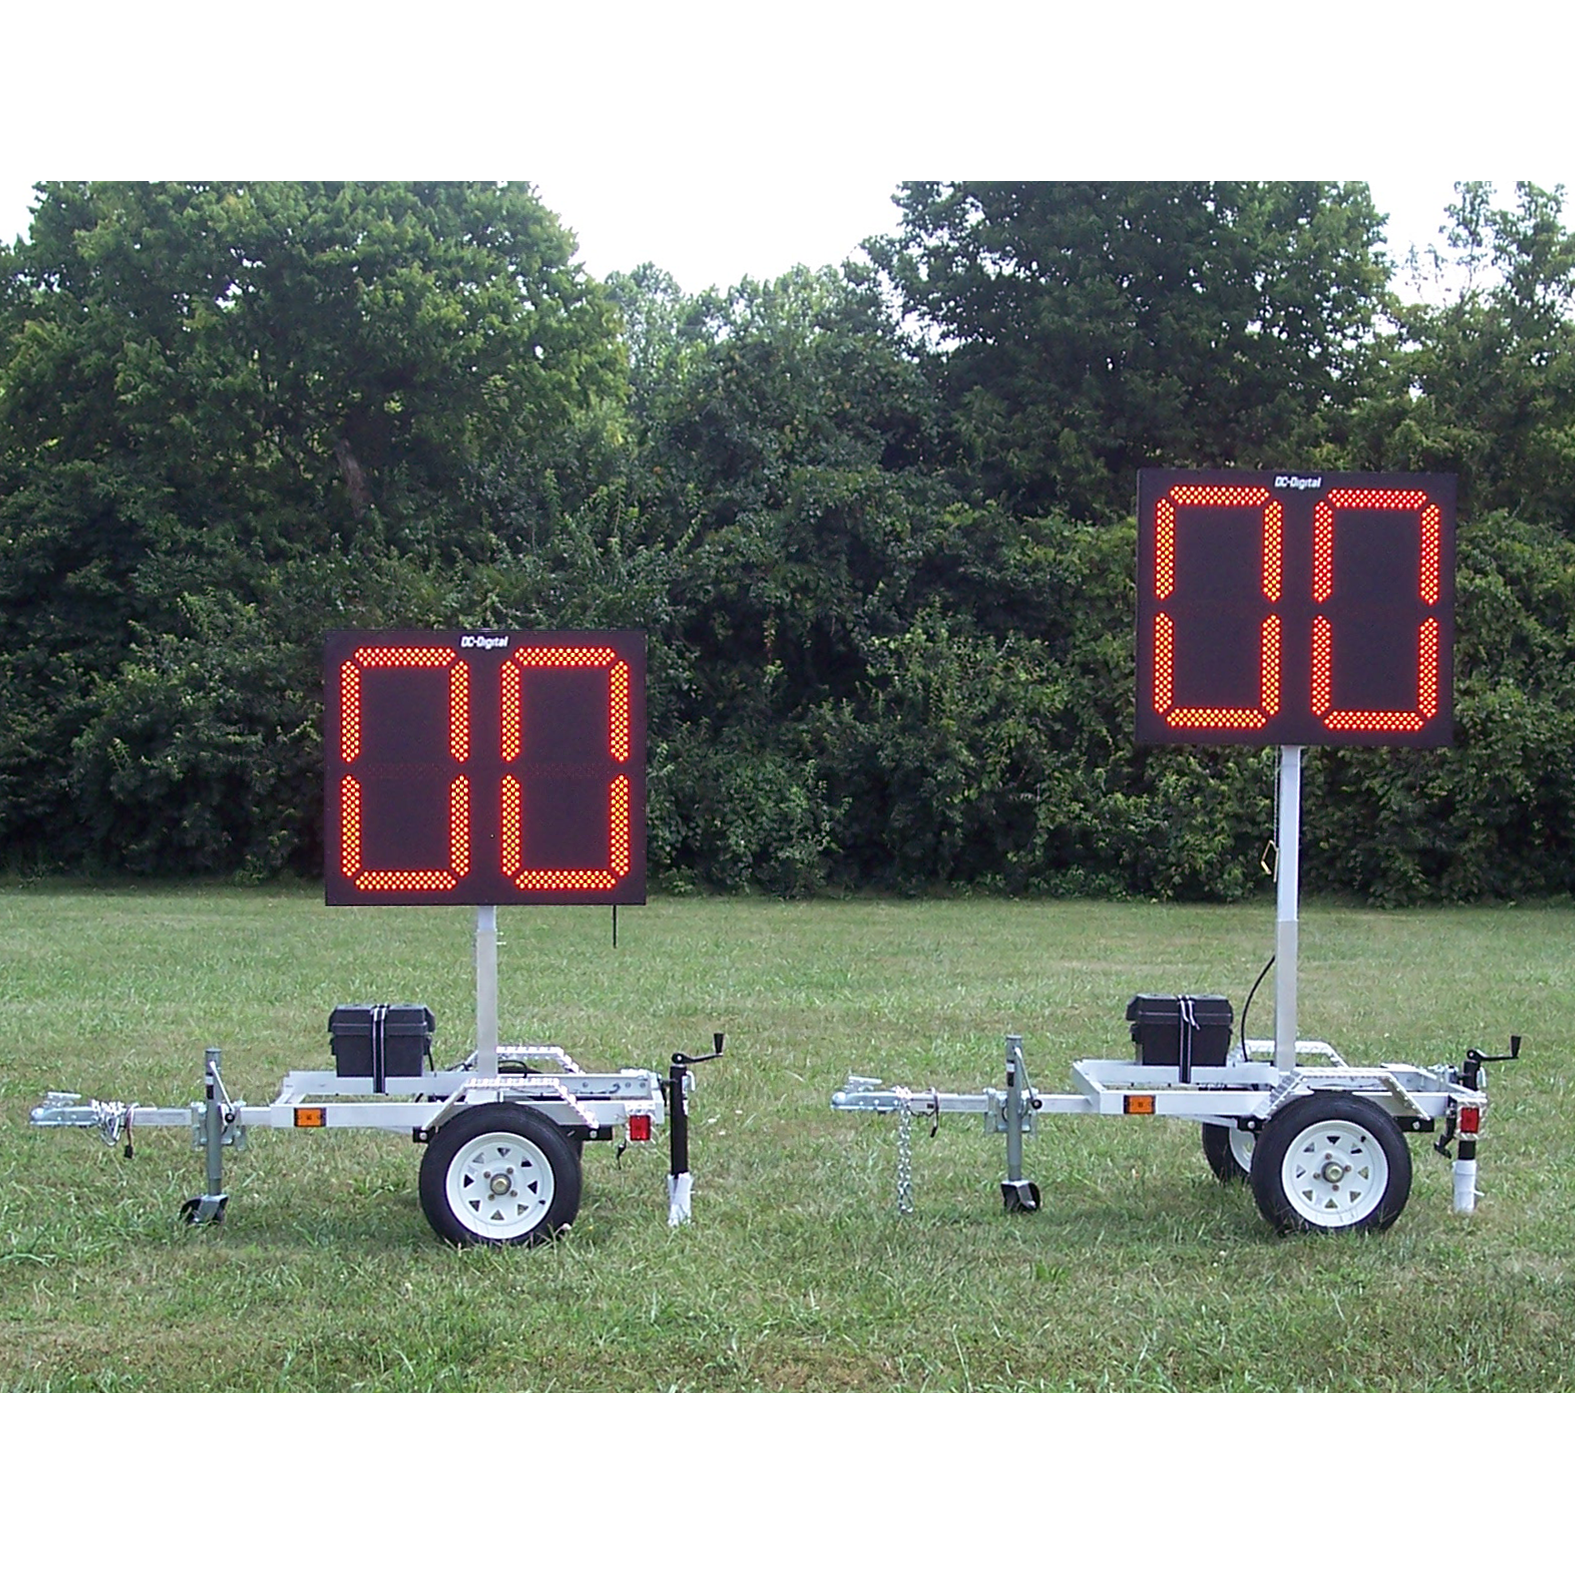 (DC-300PSB) 30 Inch LED Digital, Portable Pitch or Inning Baseball-Softball Delay of Game Timers with Carts, Battery Operated, RF-Wireless Controlled (Complete Set)